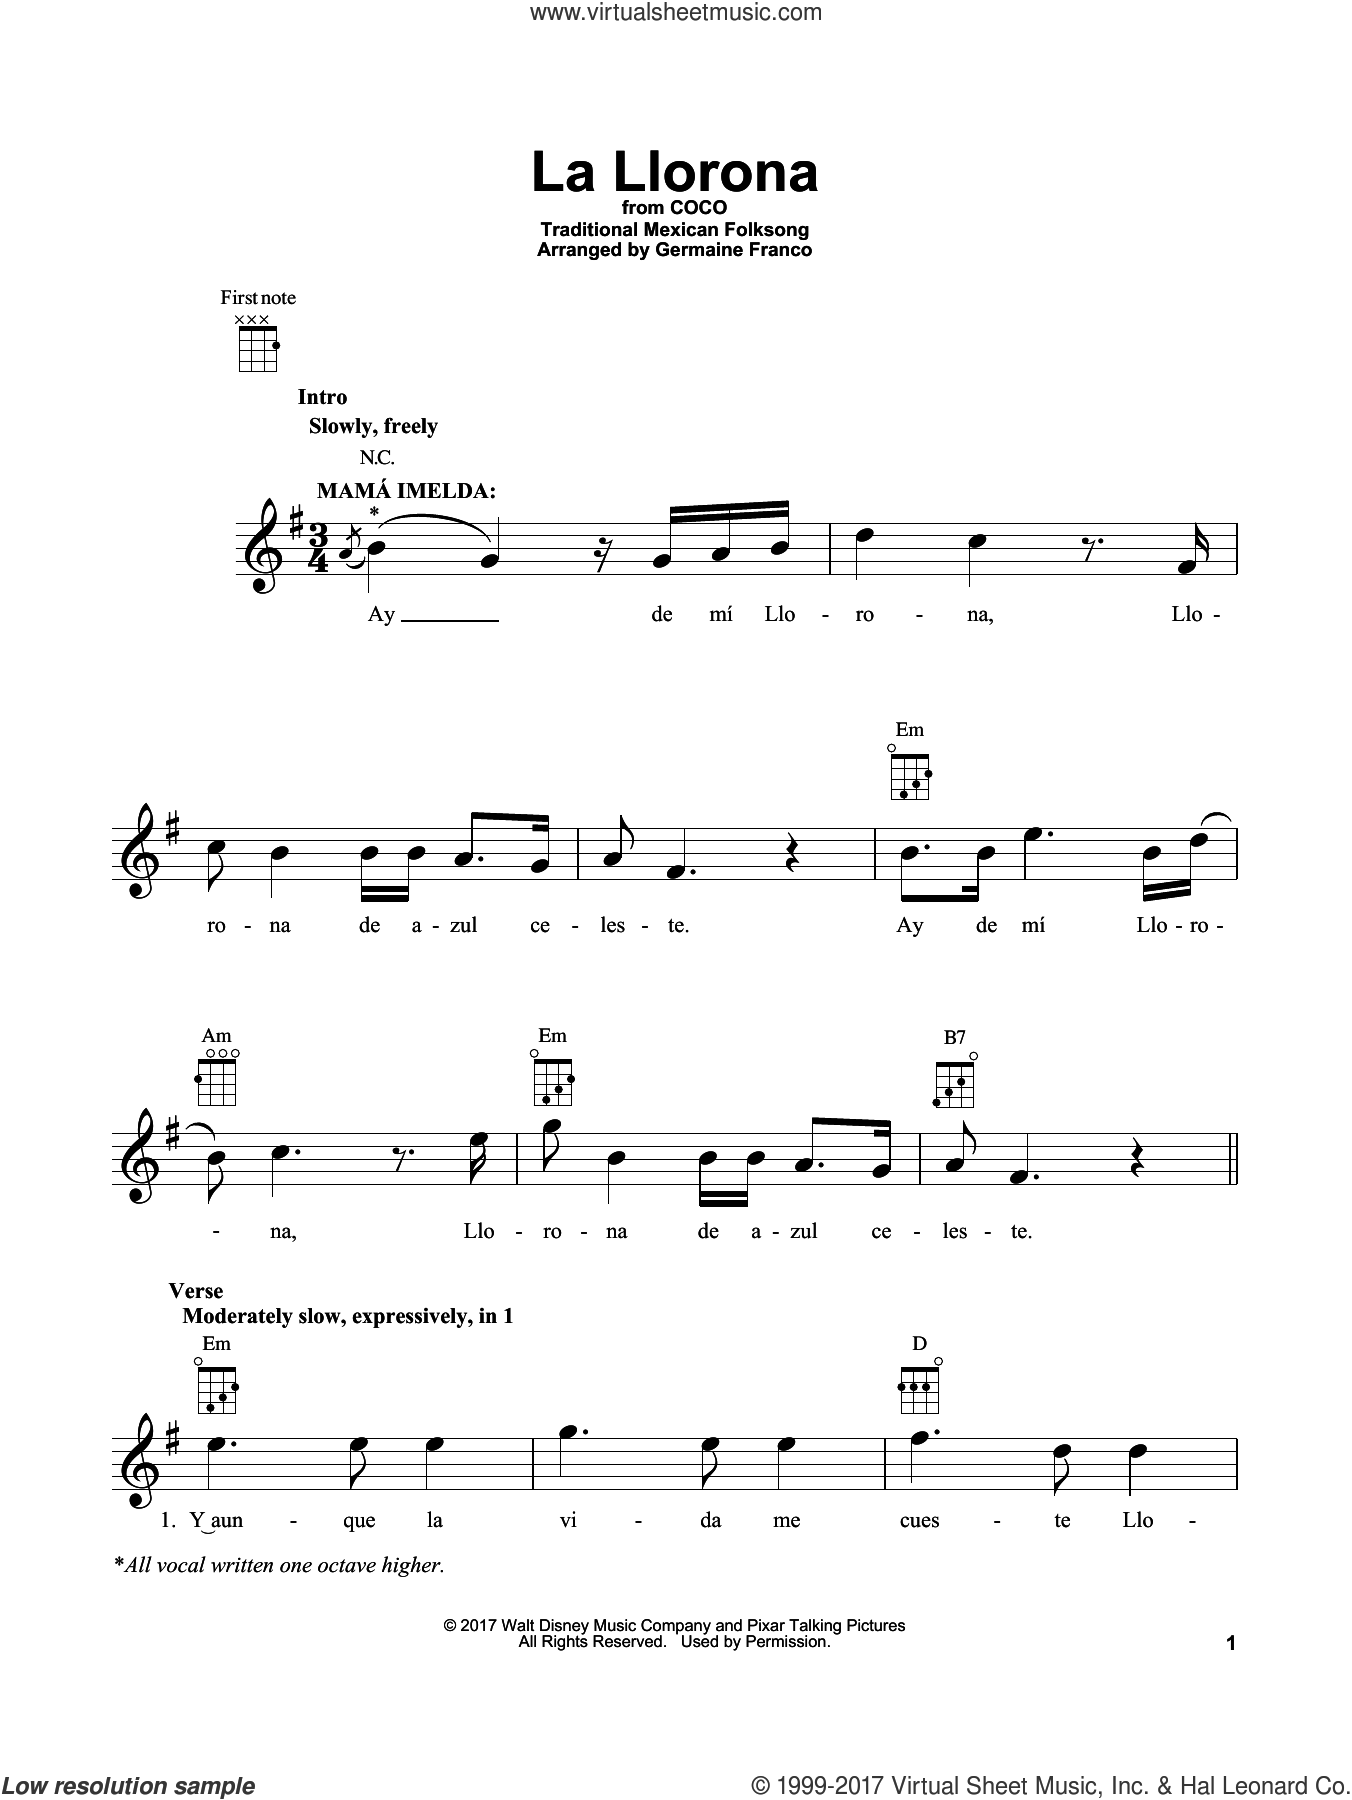 La Llorona sheet music for ukulele by Germaine Franco, Coco (Movie) and Traditional Mexican Folksong, intermediate skill level